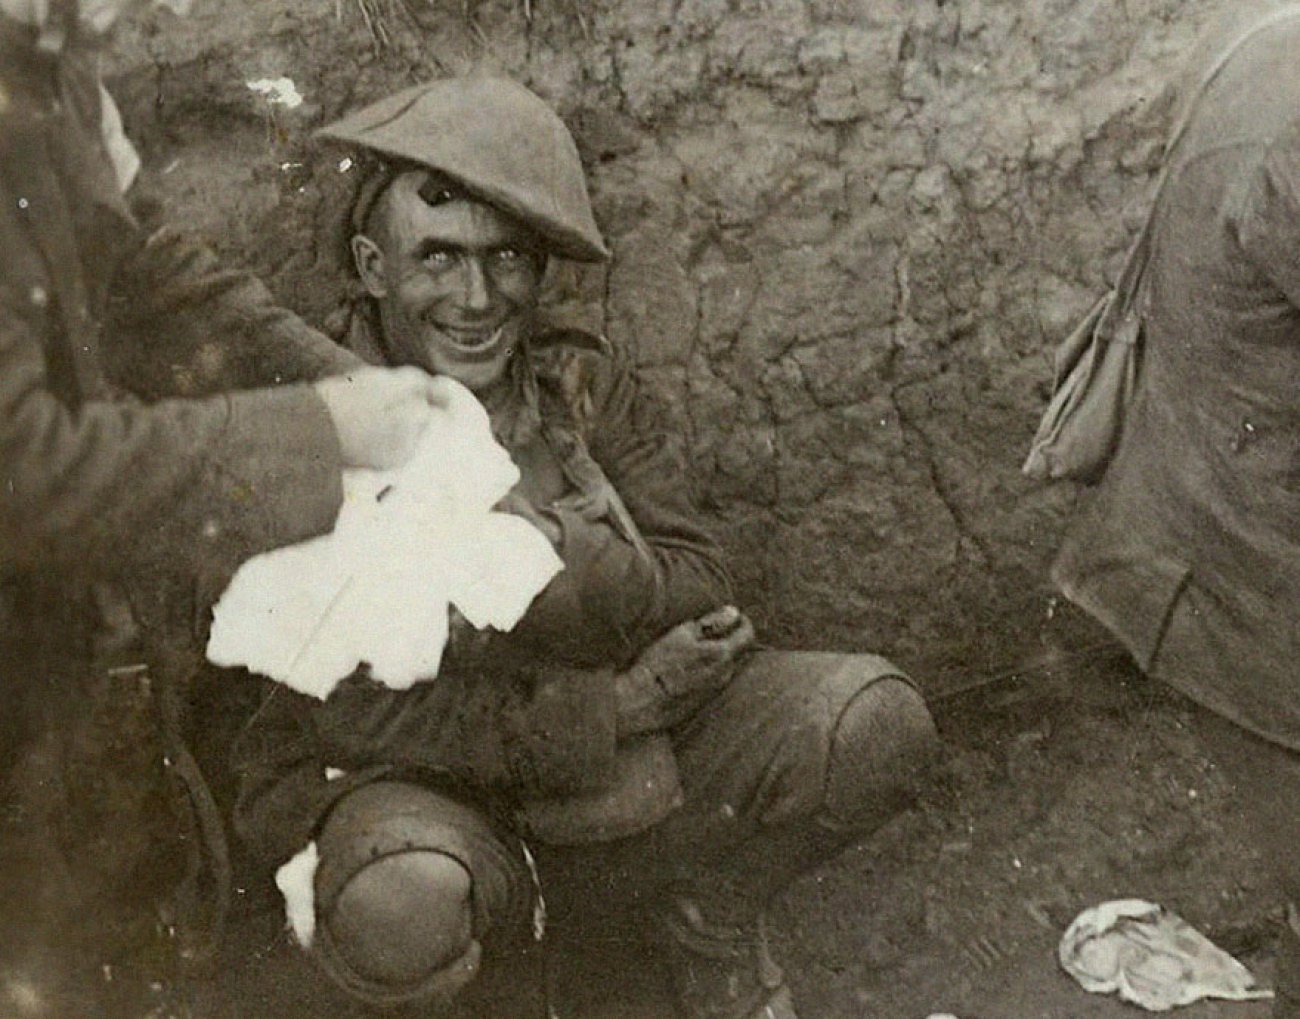 shell-shocked-soldier-in-a-trench-during-the-battle-of-courcelette-france-1916